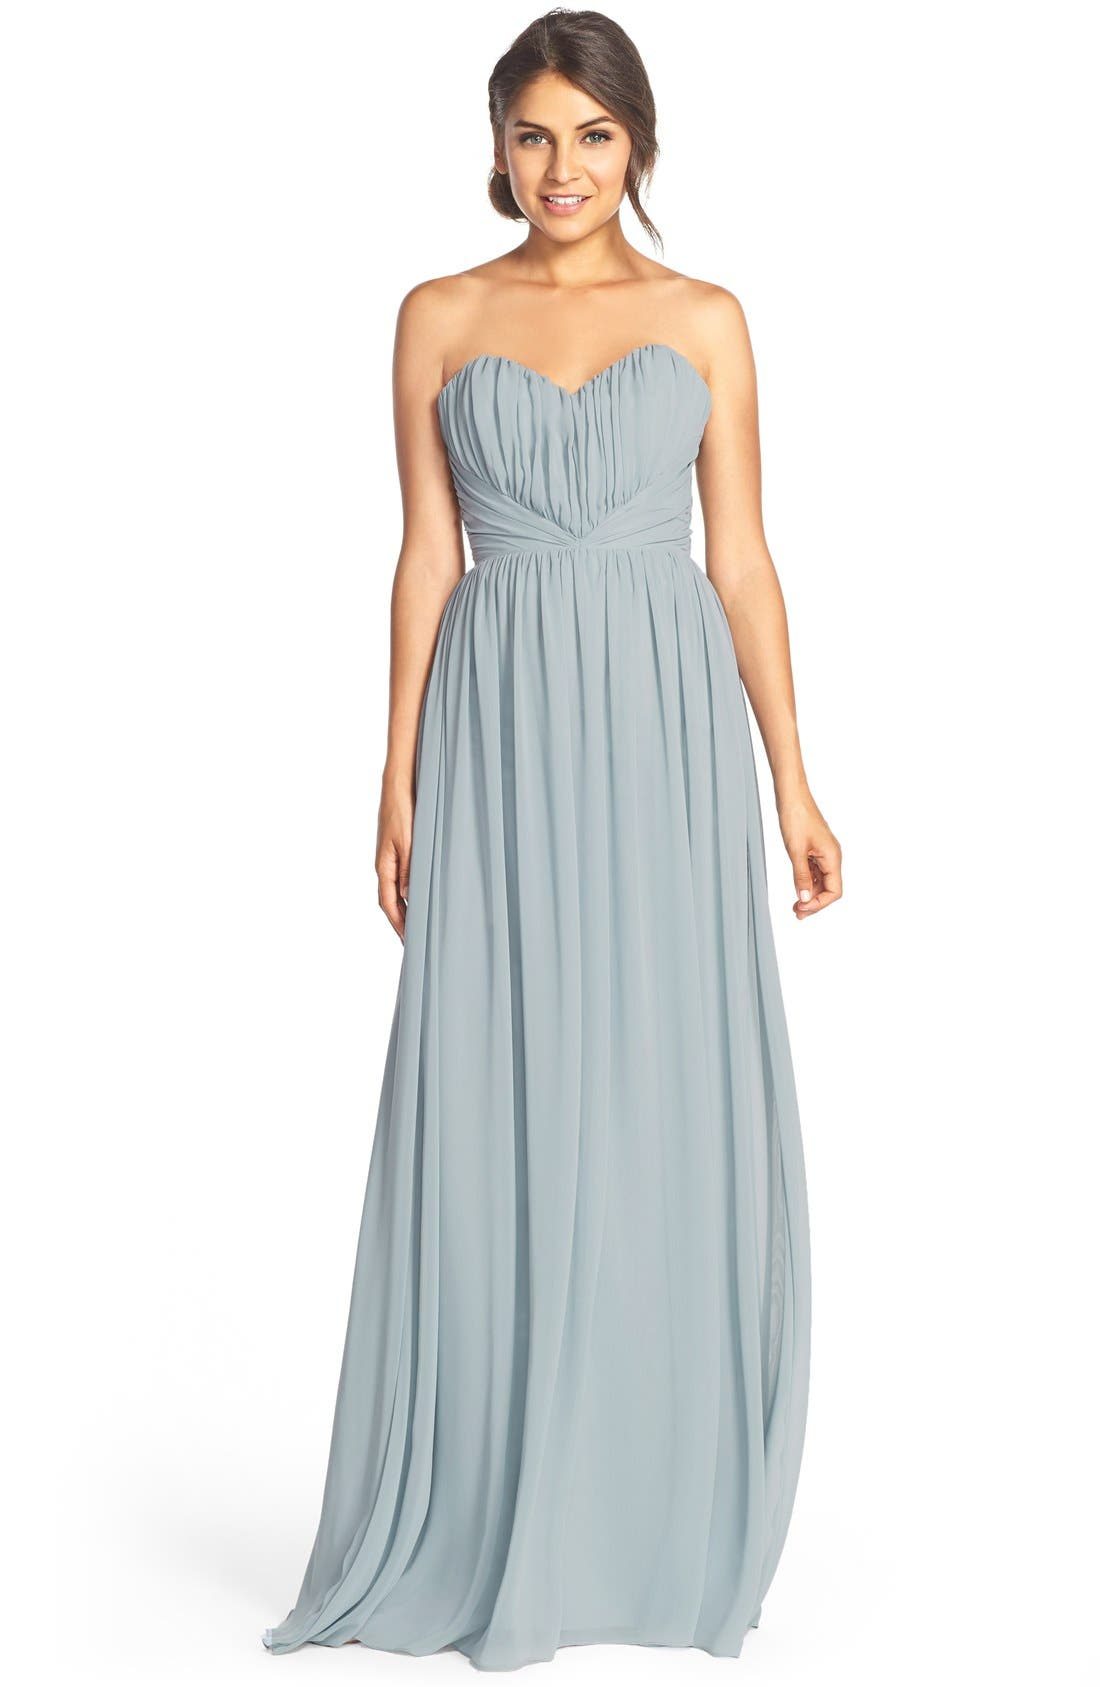 Alternate Image 1 Selected - Jim Hjelm Occasions Strapless Chiffon Sweetheart A-Line Gown